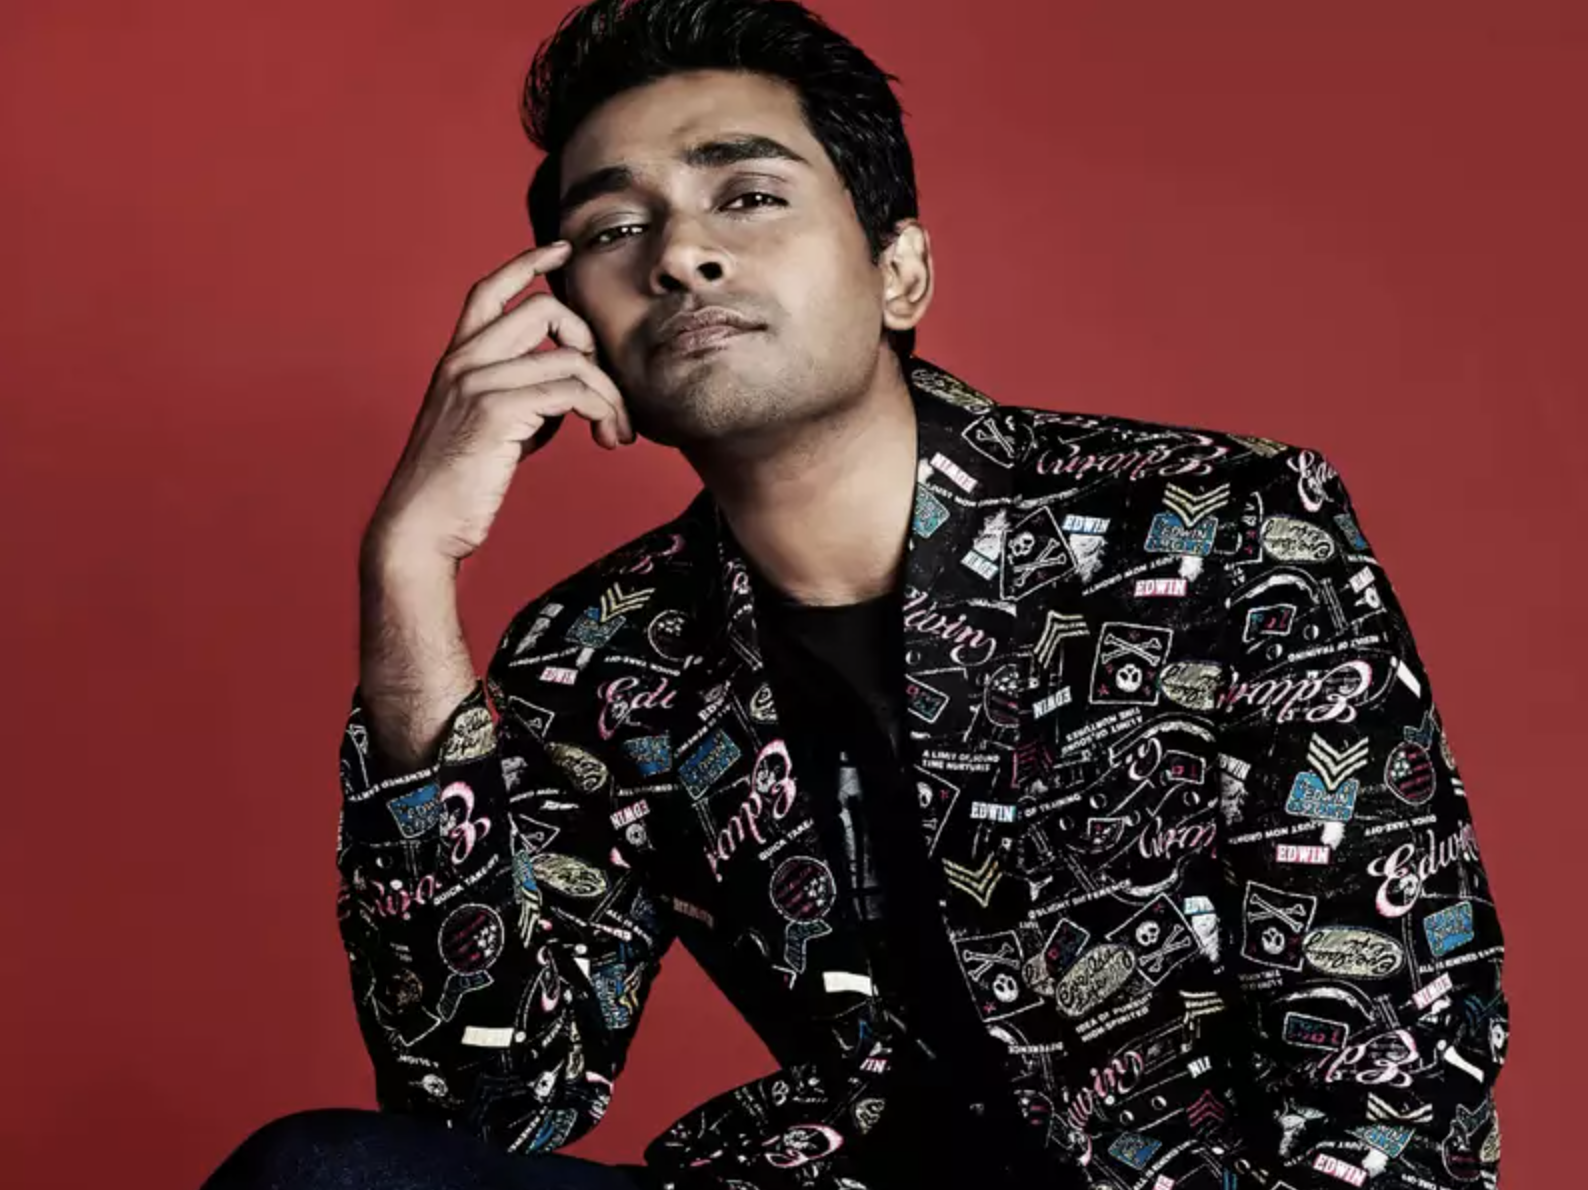 Mediacorp's all-new festive theme song will feature Vasantham Star 2005 champ and Kollywood music producer Shabir. Photo courtesy: Mediacorp